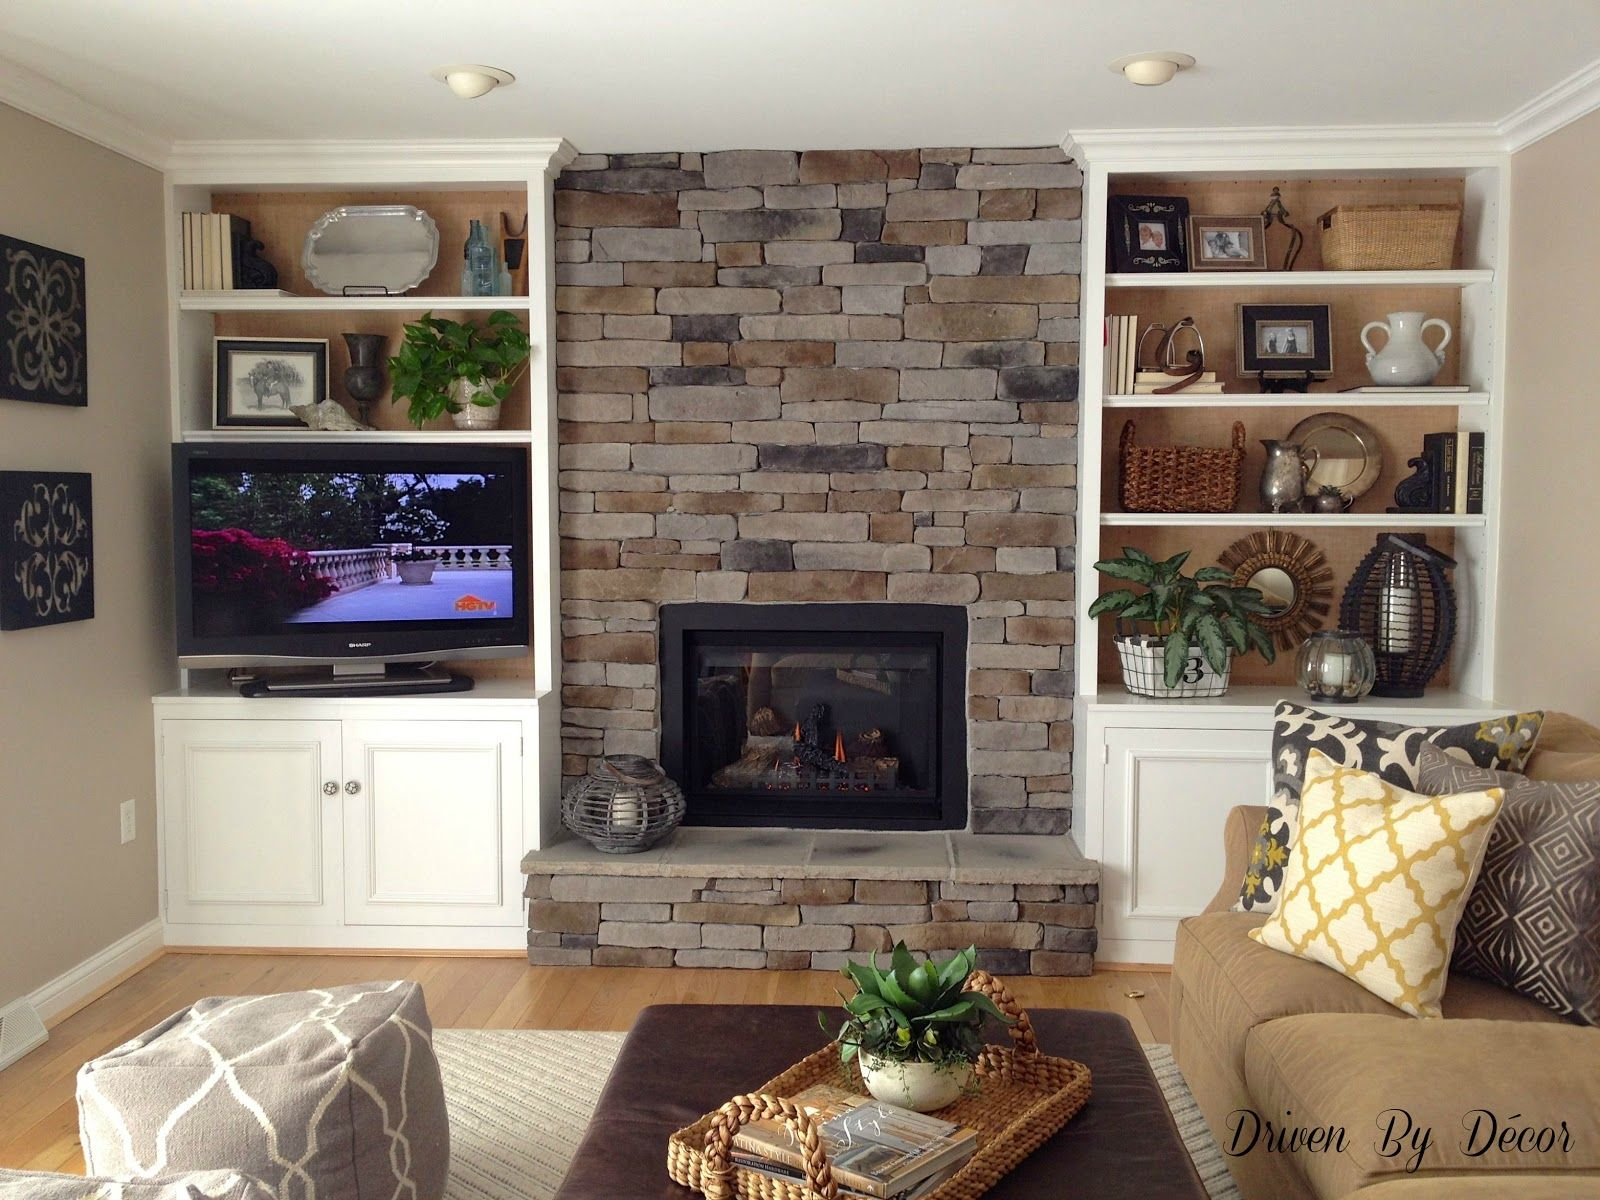 Bookcase Built In Bookshelves Around Fireplace | ... see in well-styled  shelves